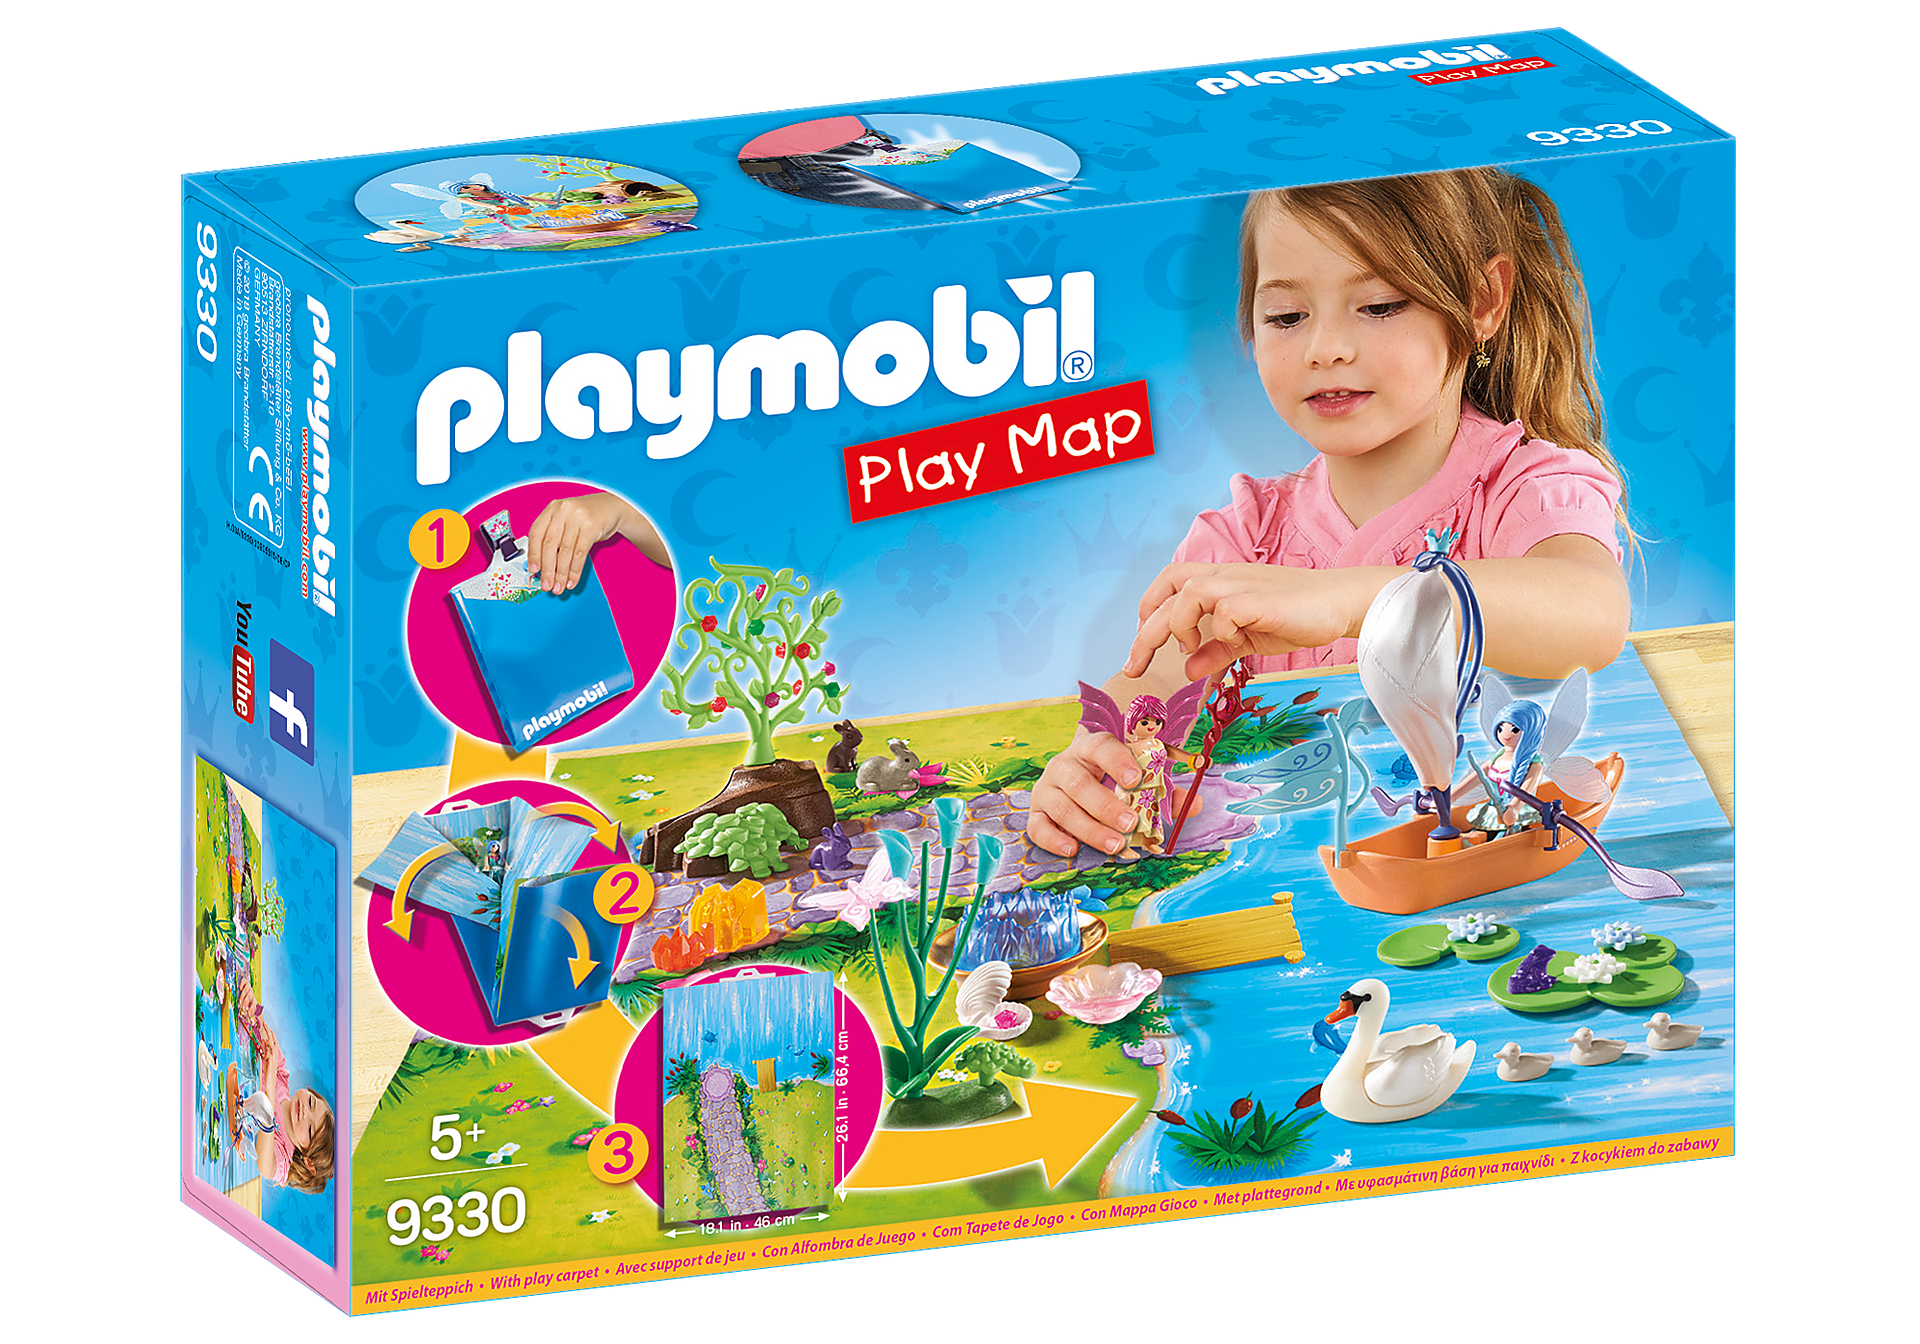 http://media.playmobil.com/i/playmobil/9330_product_box_front/Play Map Feenland